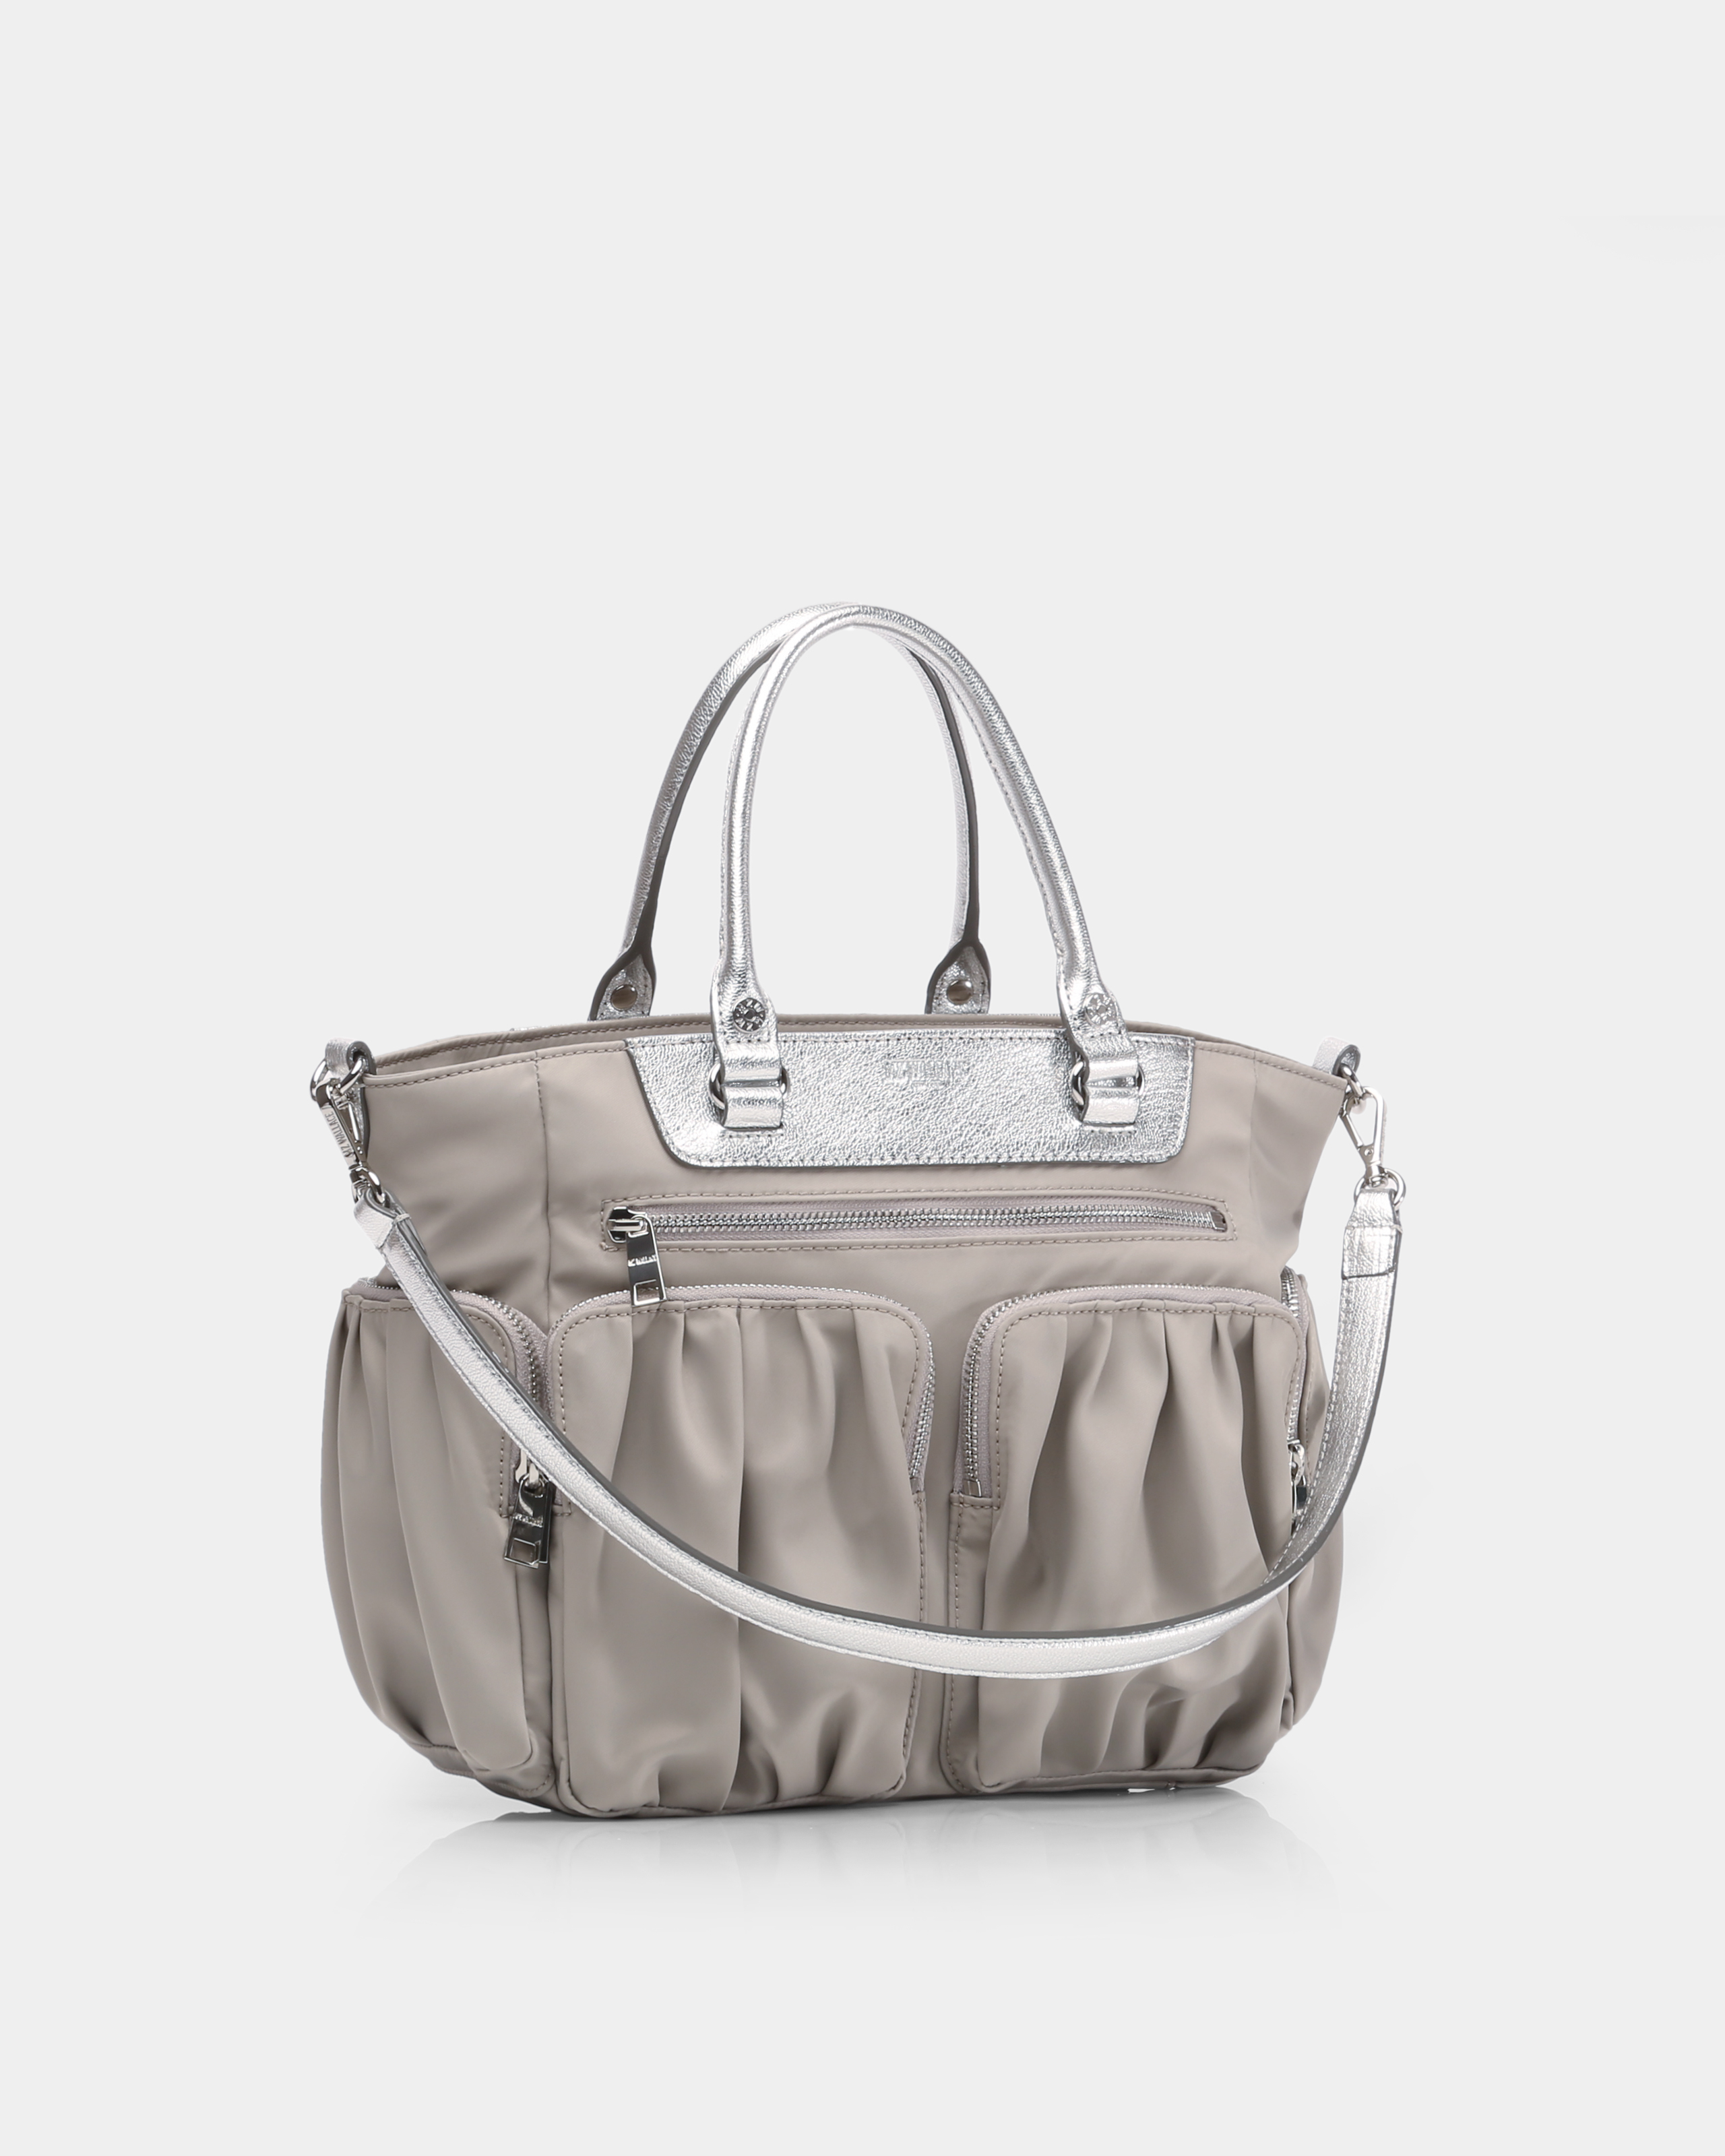 Paloma Bedford Small Abbey Tote  (5921372) in color Paloma